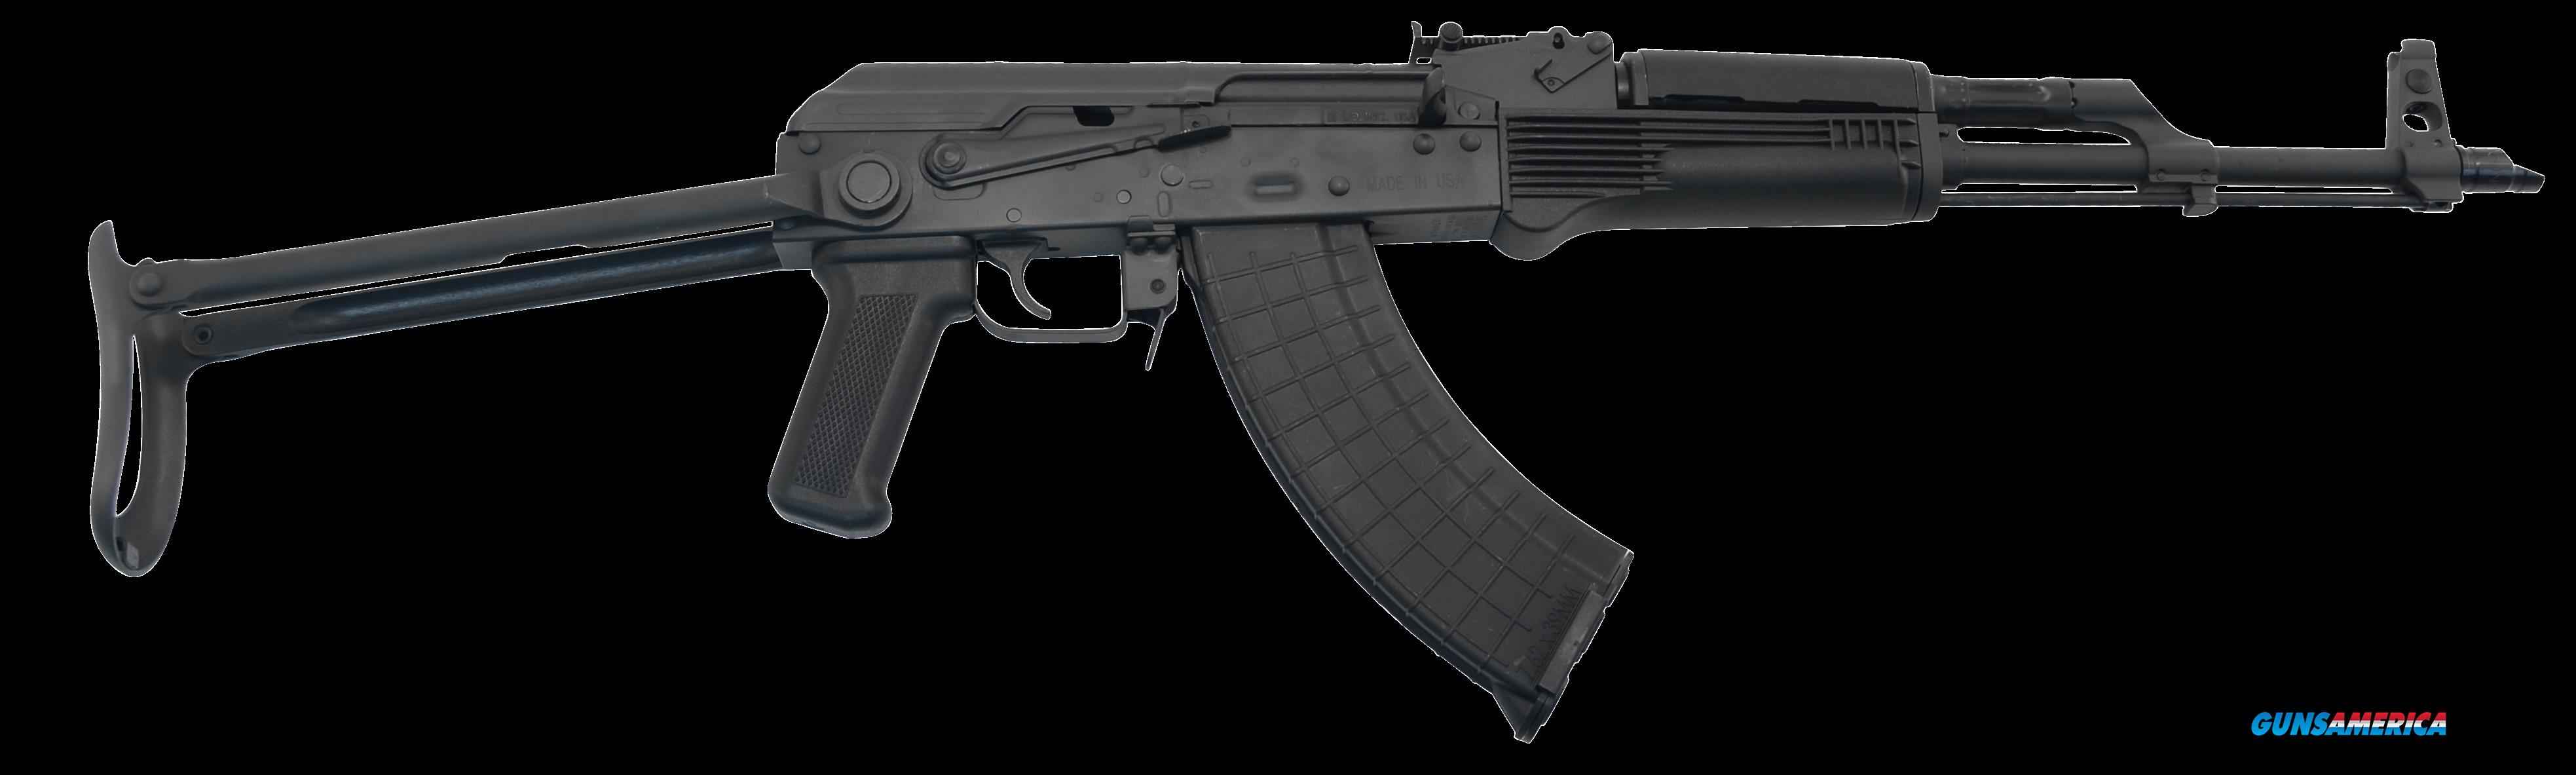 "I.O. IODM2003 AKM247 Tactical Rifle Semi-Automatic 7.62x39mm 16.2"" 30+1 Underfold Synthetic Black  Guns > Rifles > AK-47 Rifles (and copies) > Folding Stock"